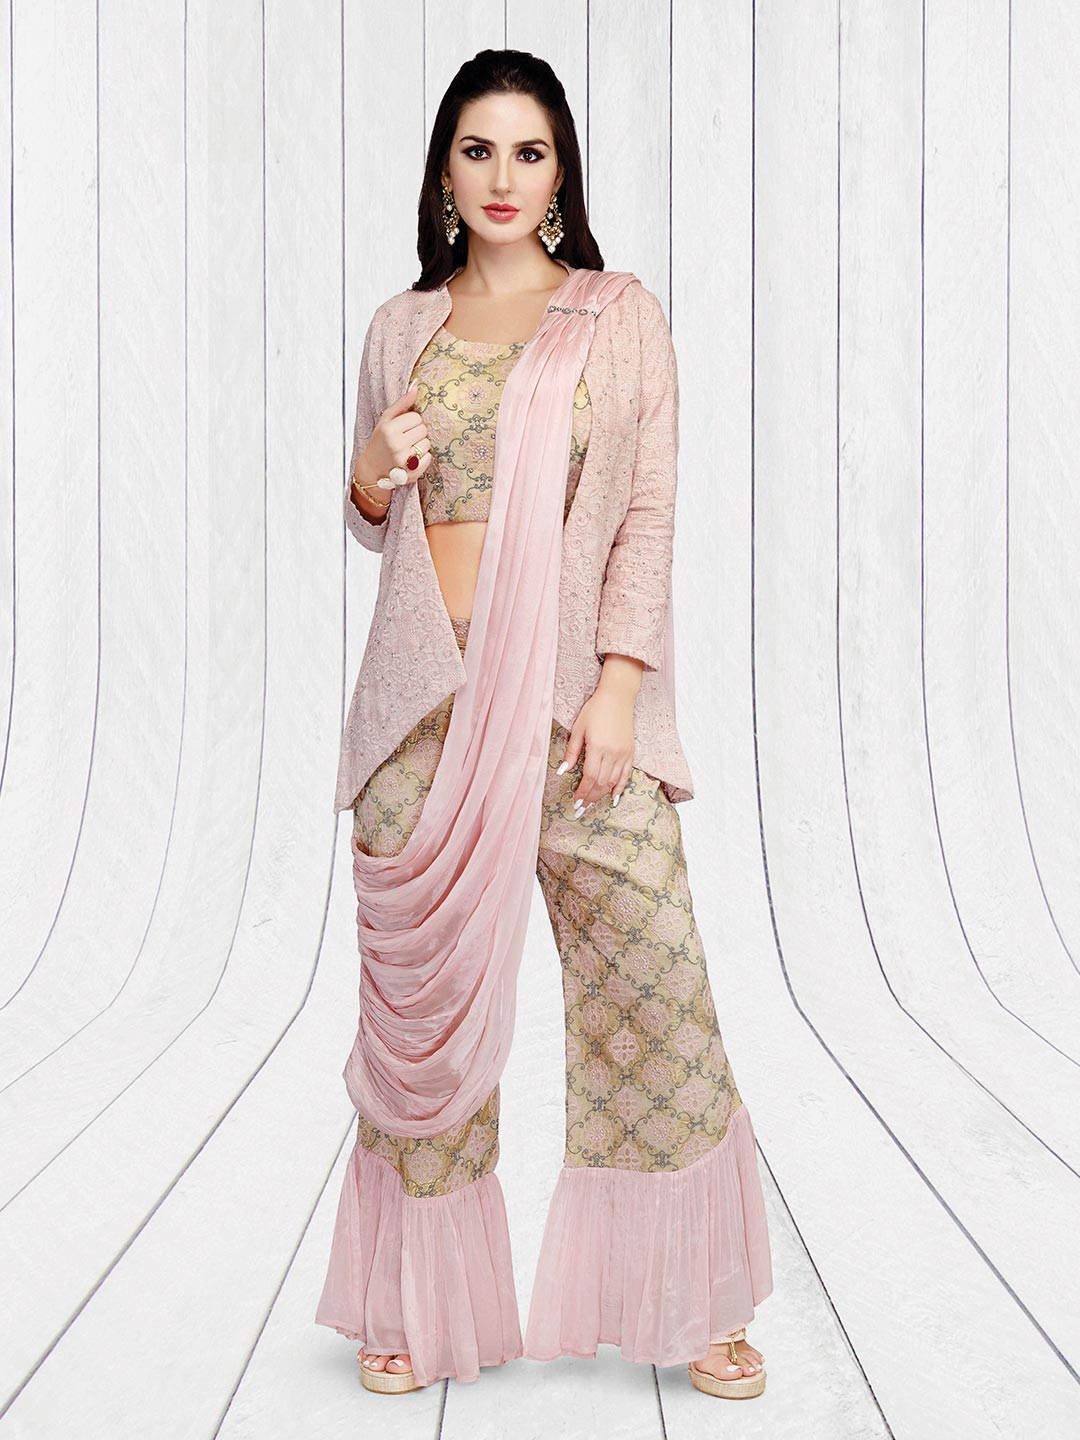 b925c066eaa3 55 Different Designs Of Salwar Suits For Women That Are Absolutely ...